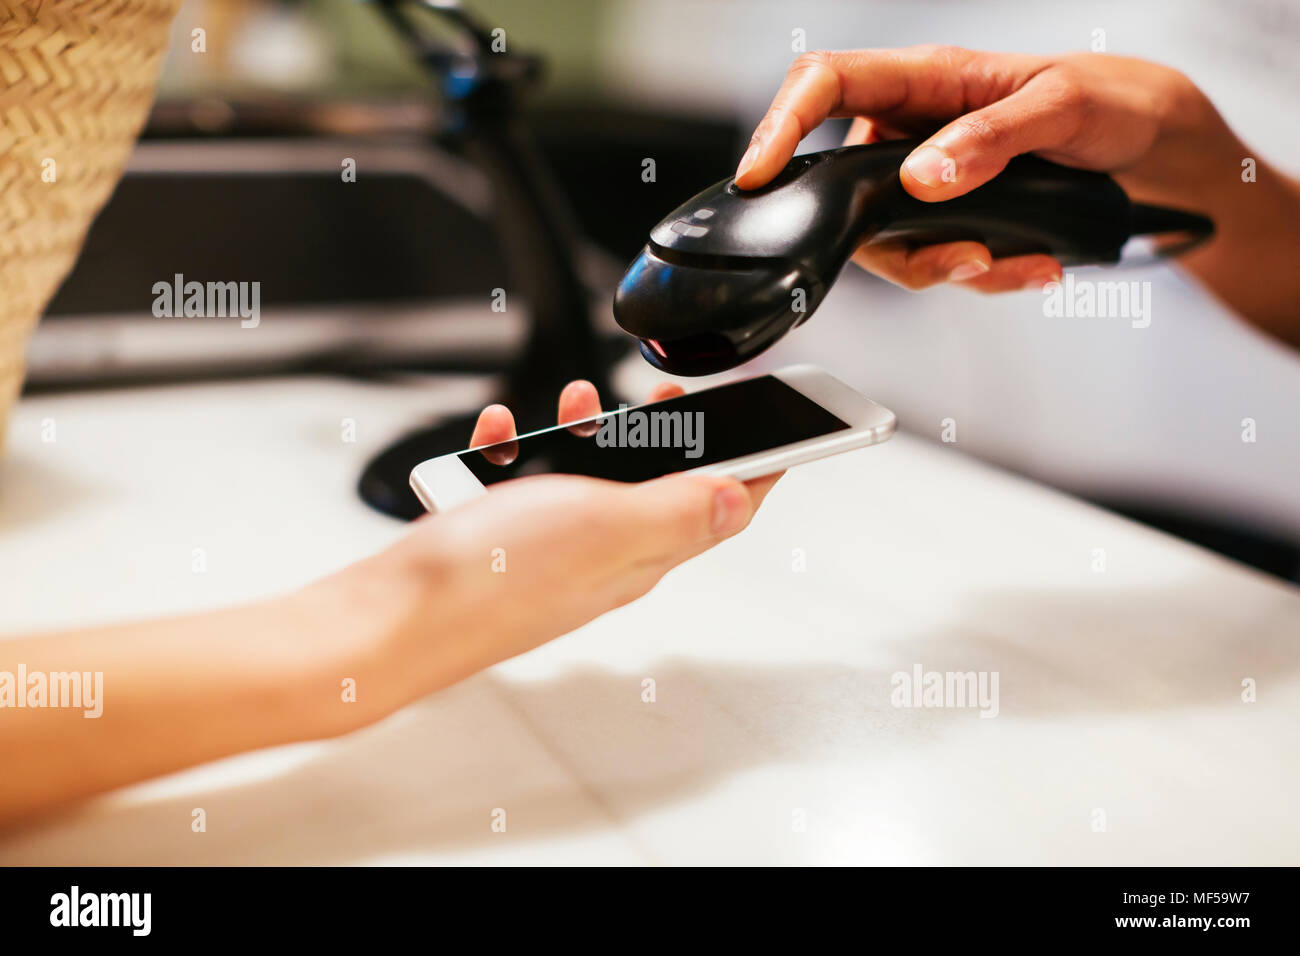 convenience store counter stock photos convenience store counter stock images alamy. Black Bedroom Furniture Sets. Home Design Ideas